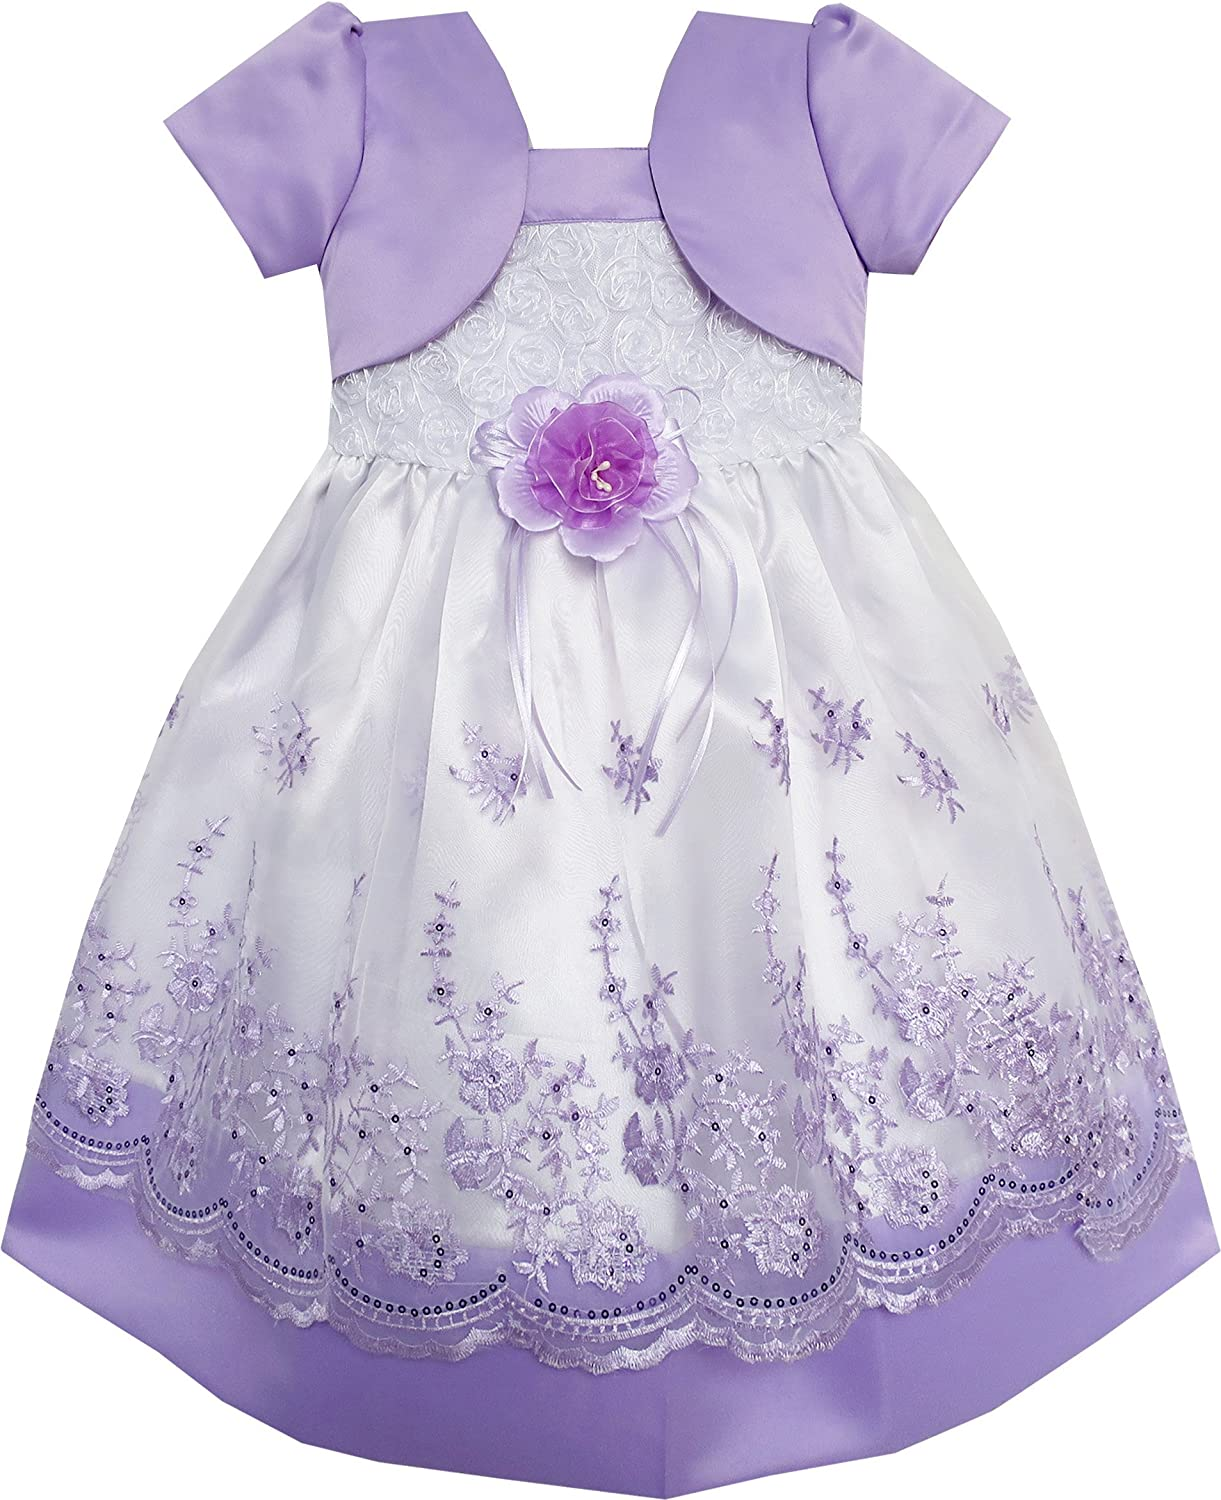 Sunny Fashion 2-in-1 Girls Dress Purple Pageant Lace Flower Wedding Party